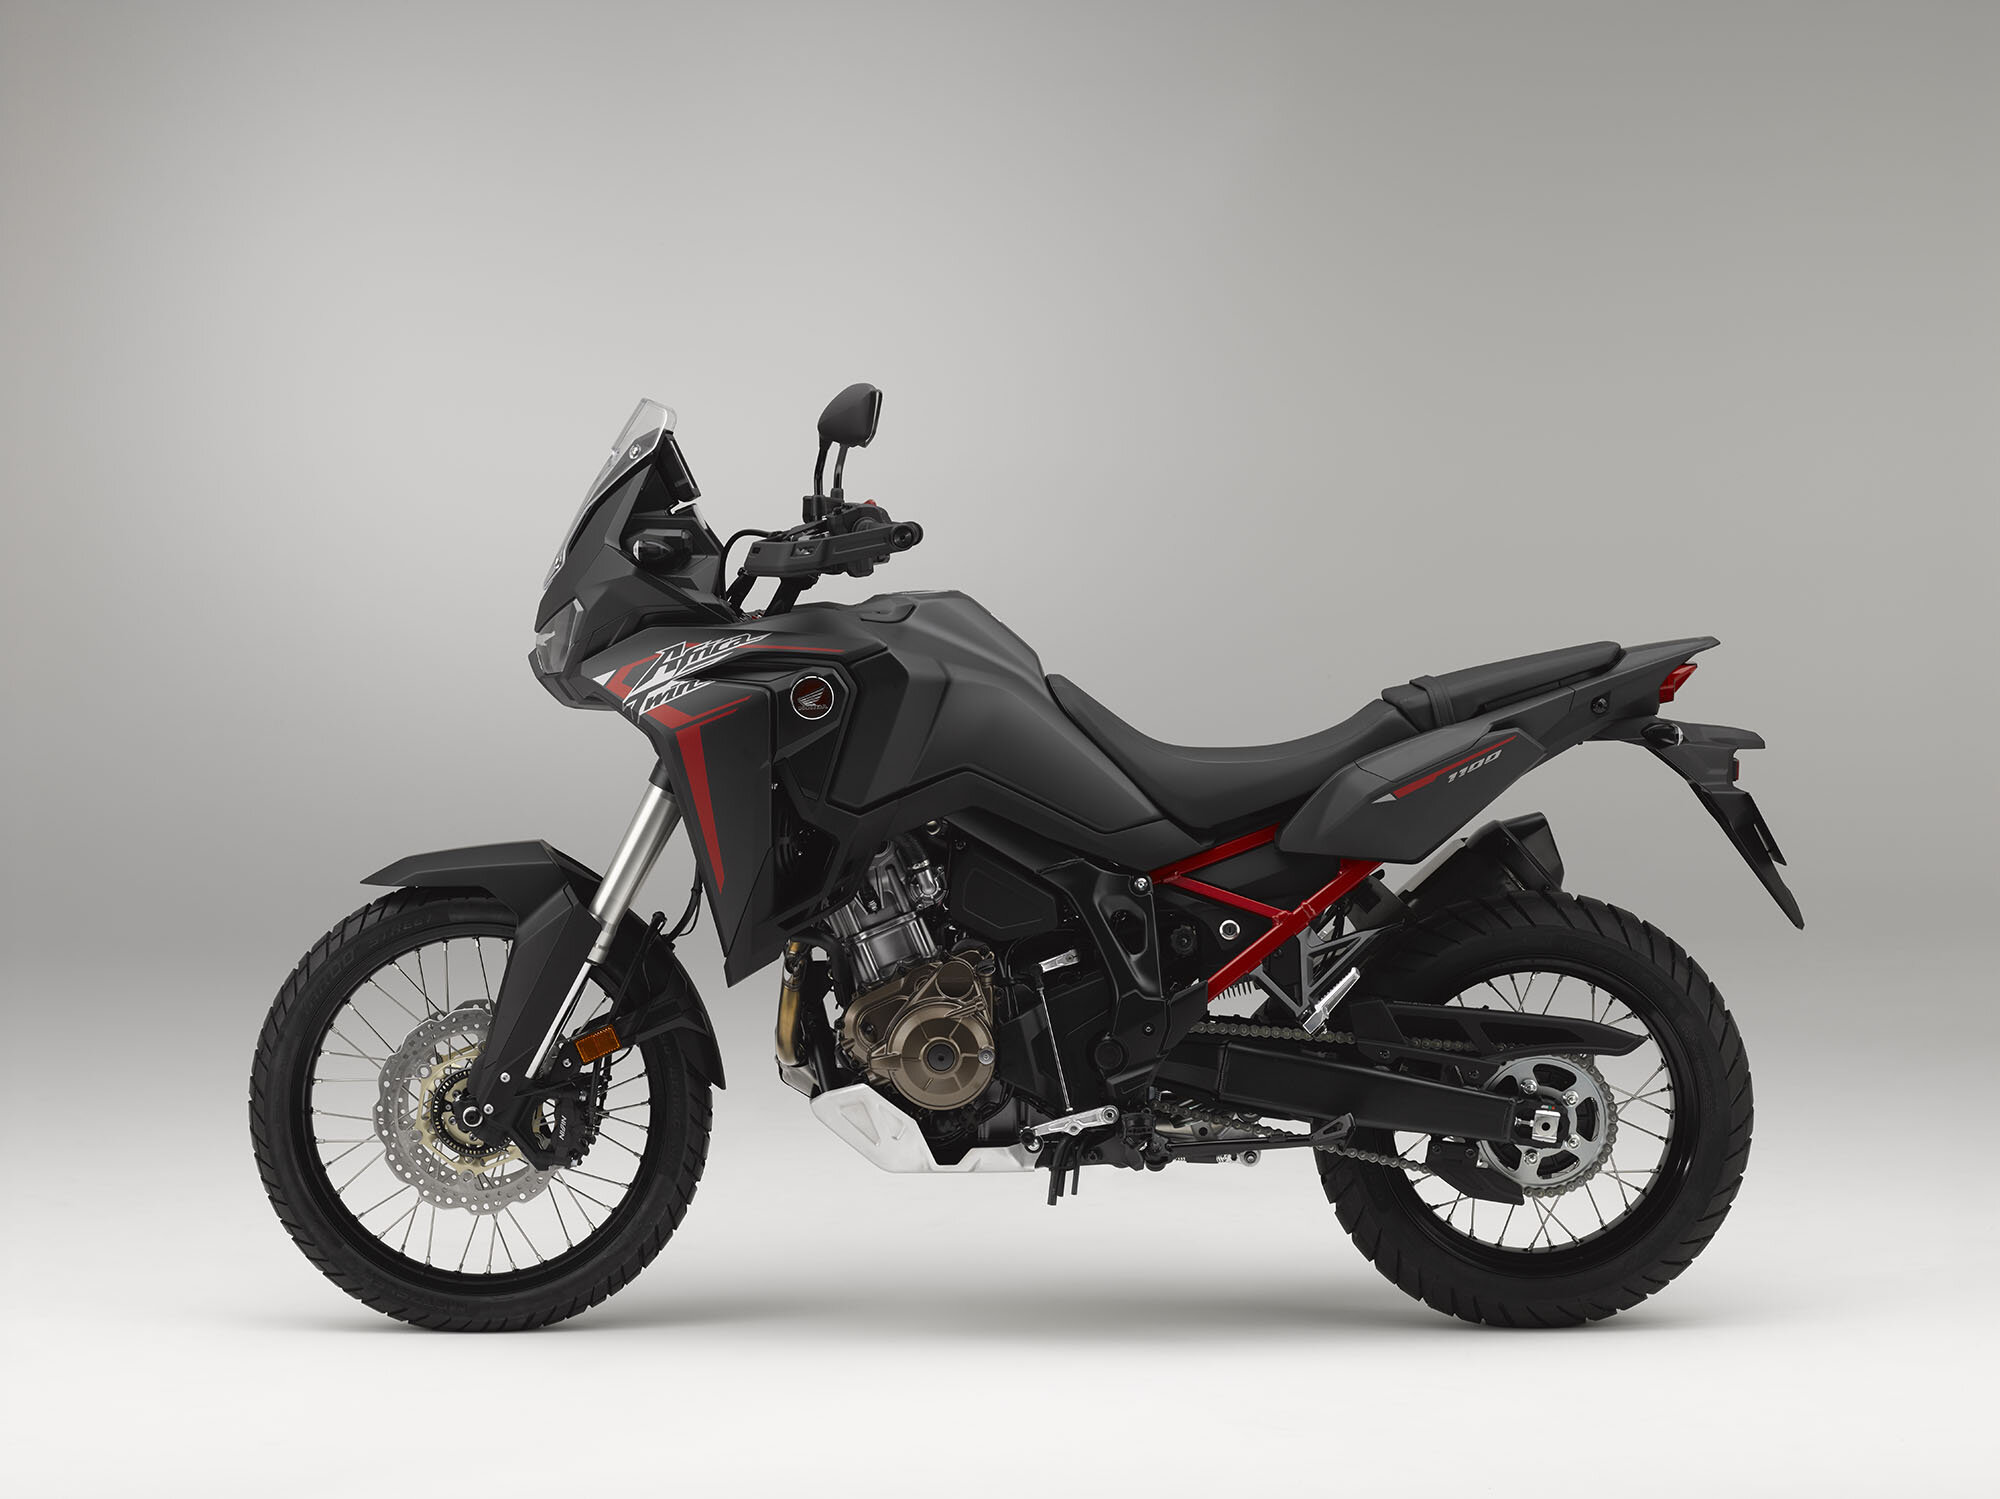 2020 Honda CRF1100L Africa Twin Matte Black Metallic